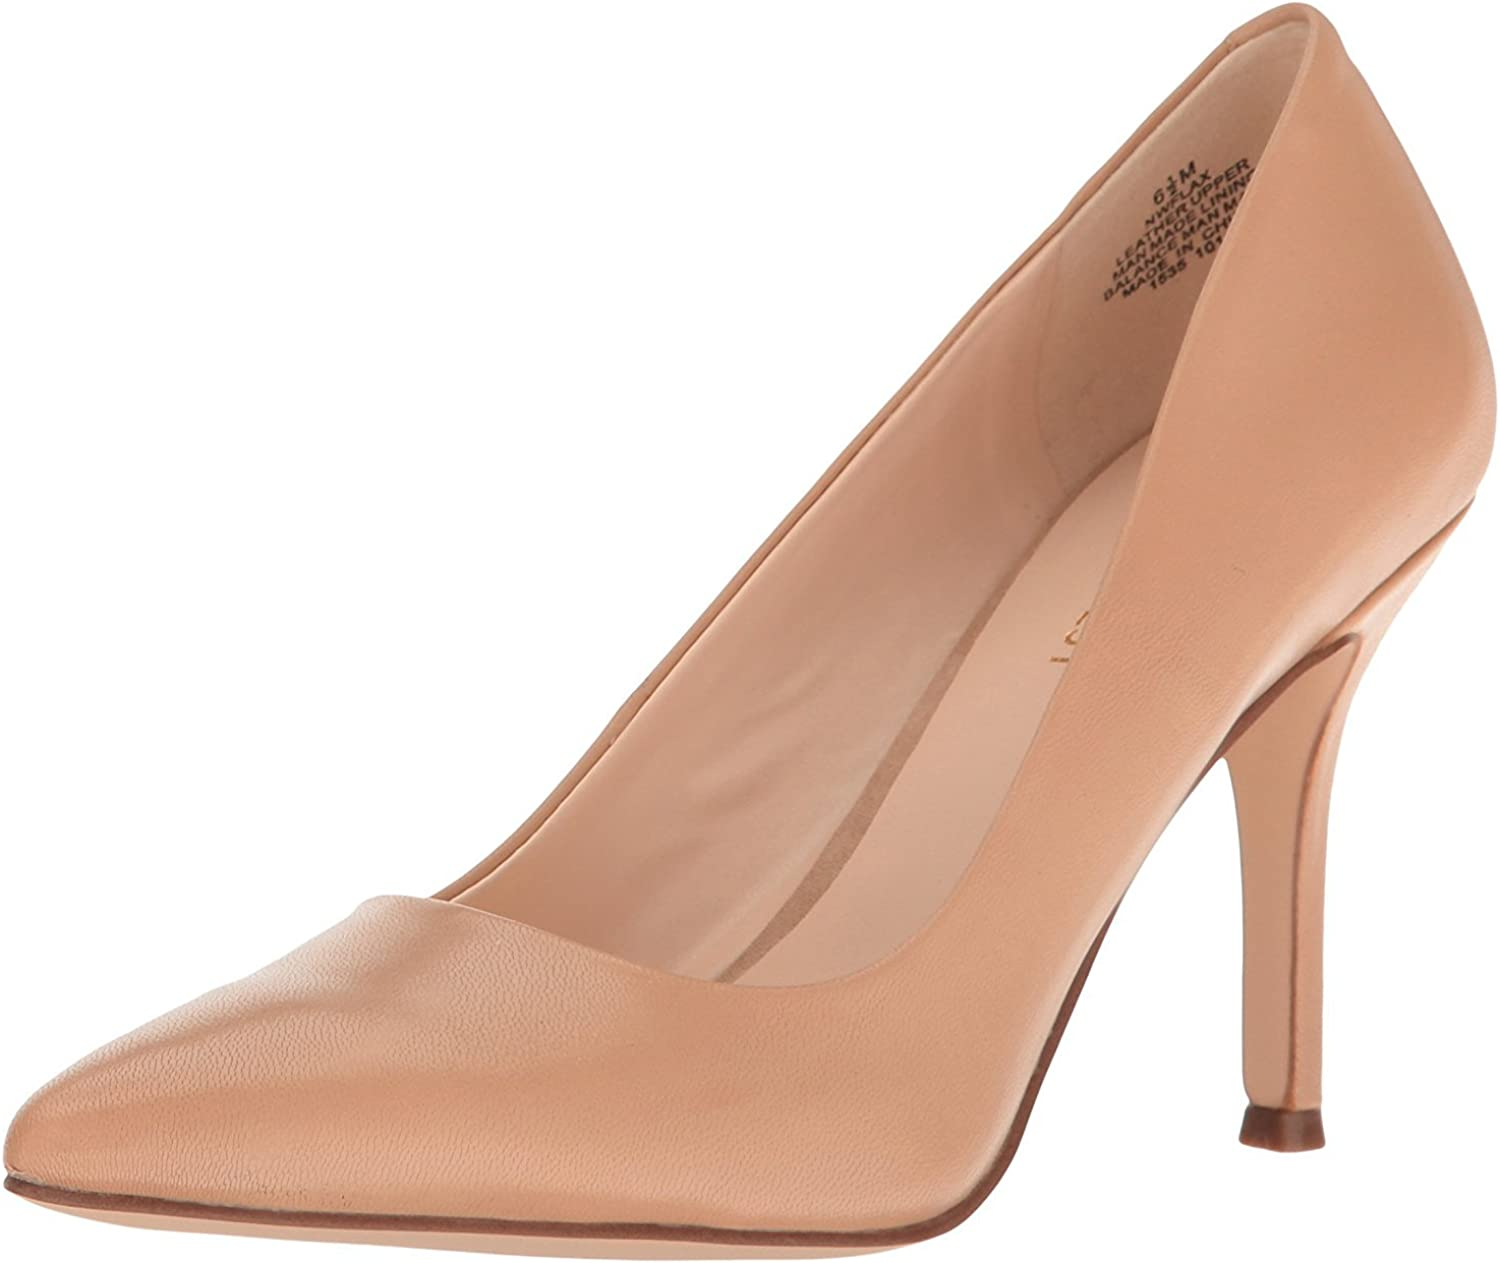 NINE WEST Womens Flax Suede Pointed Toe